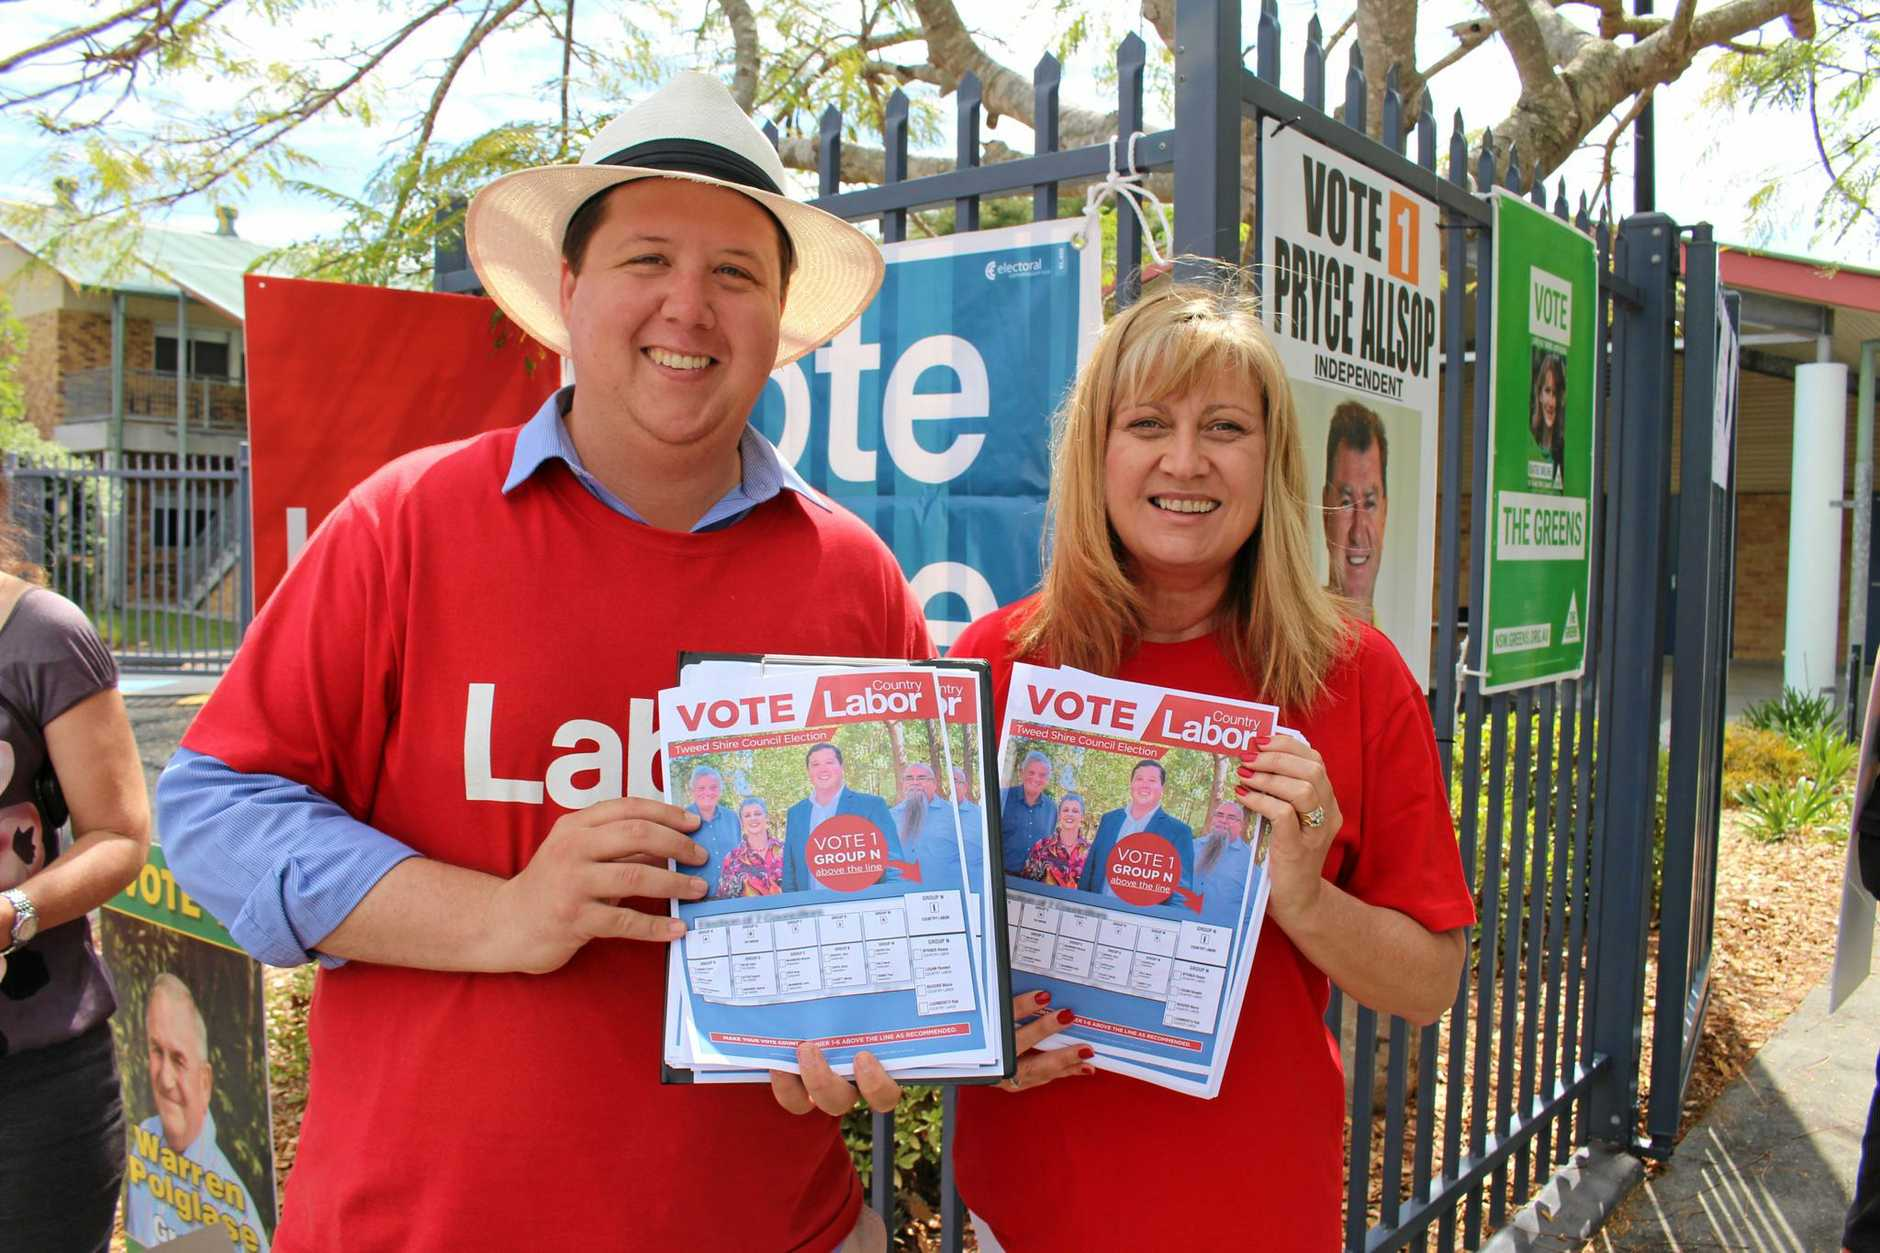 Labour candidate for the Tweed Shire Council Reece Byrne had support from Richmond MP Justine Elliot on election day.